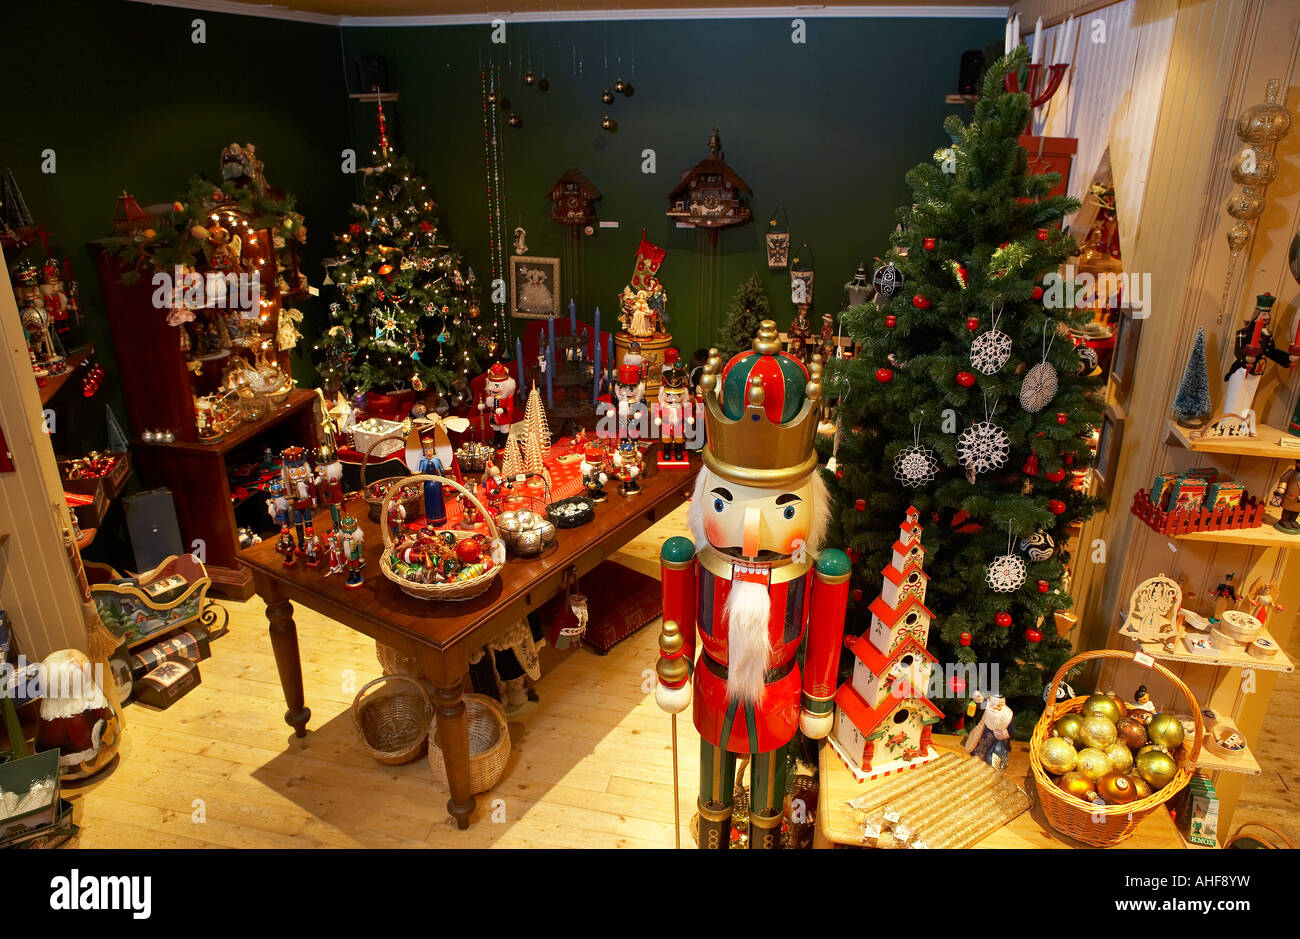 Christmas decorations for sale iceland stock photo for Christmas decorations sale online